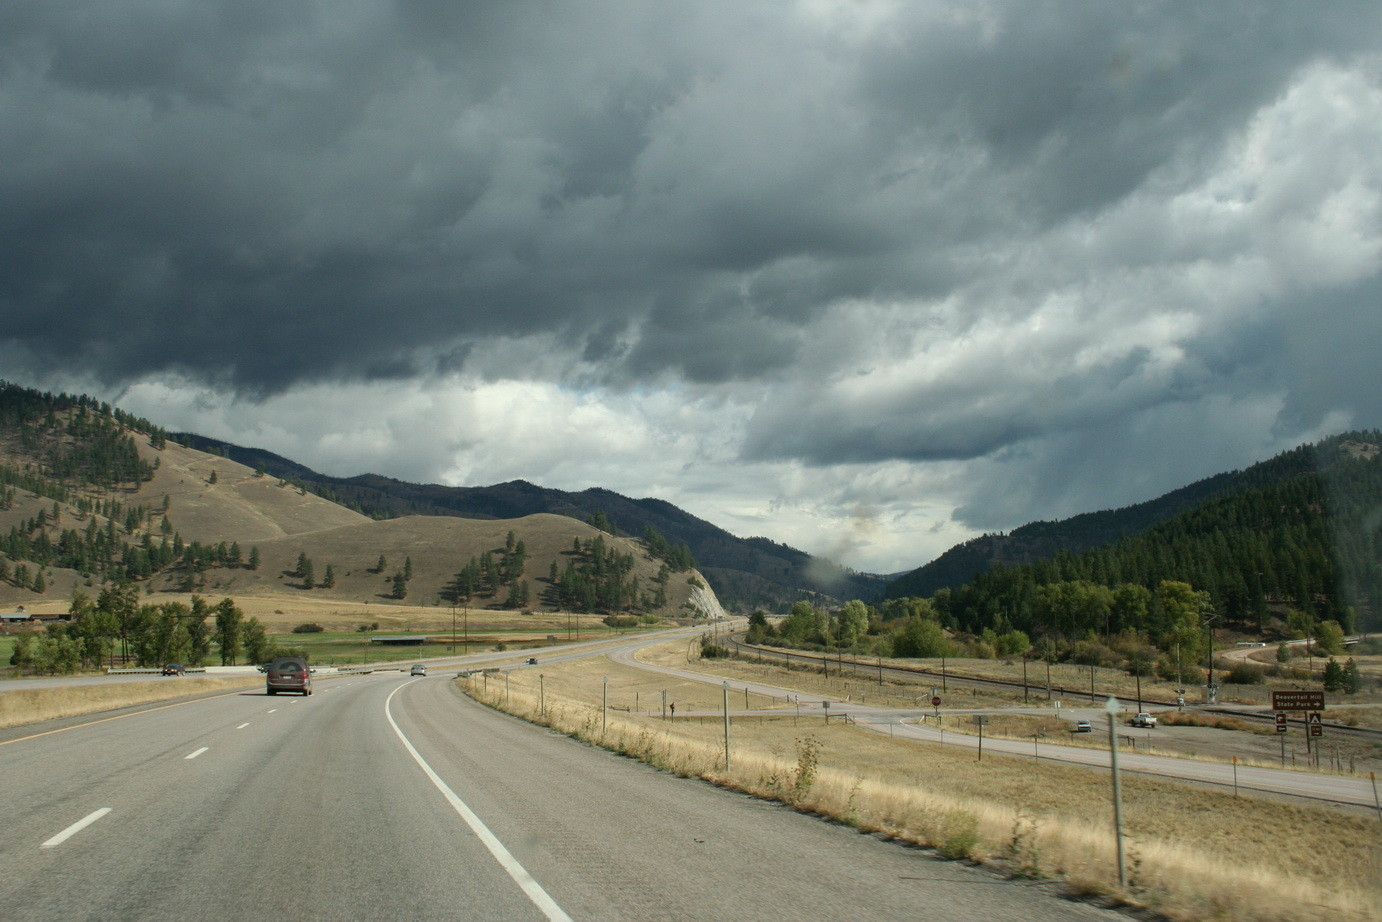 Highway in Montana (USA)